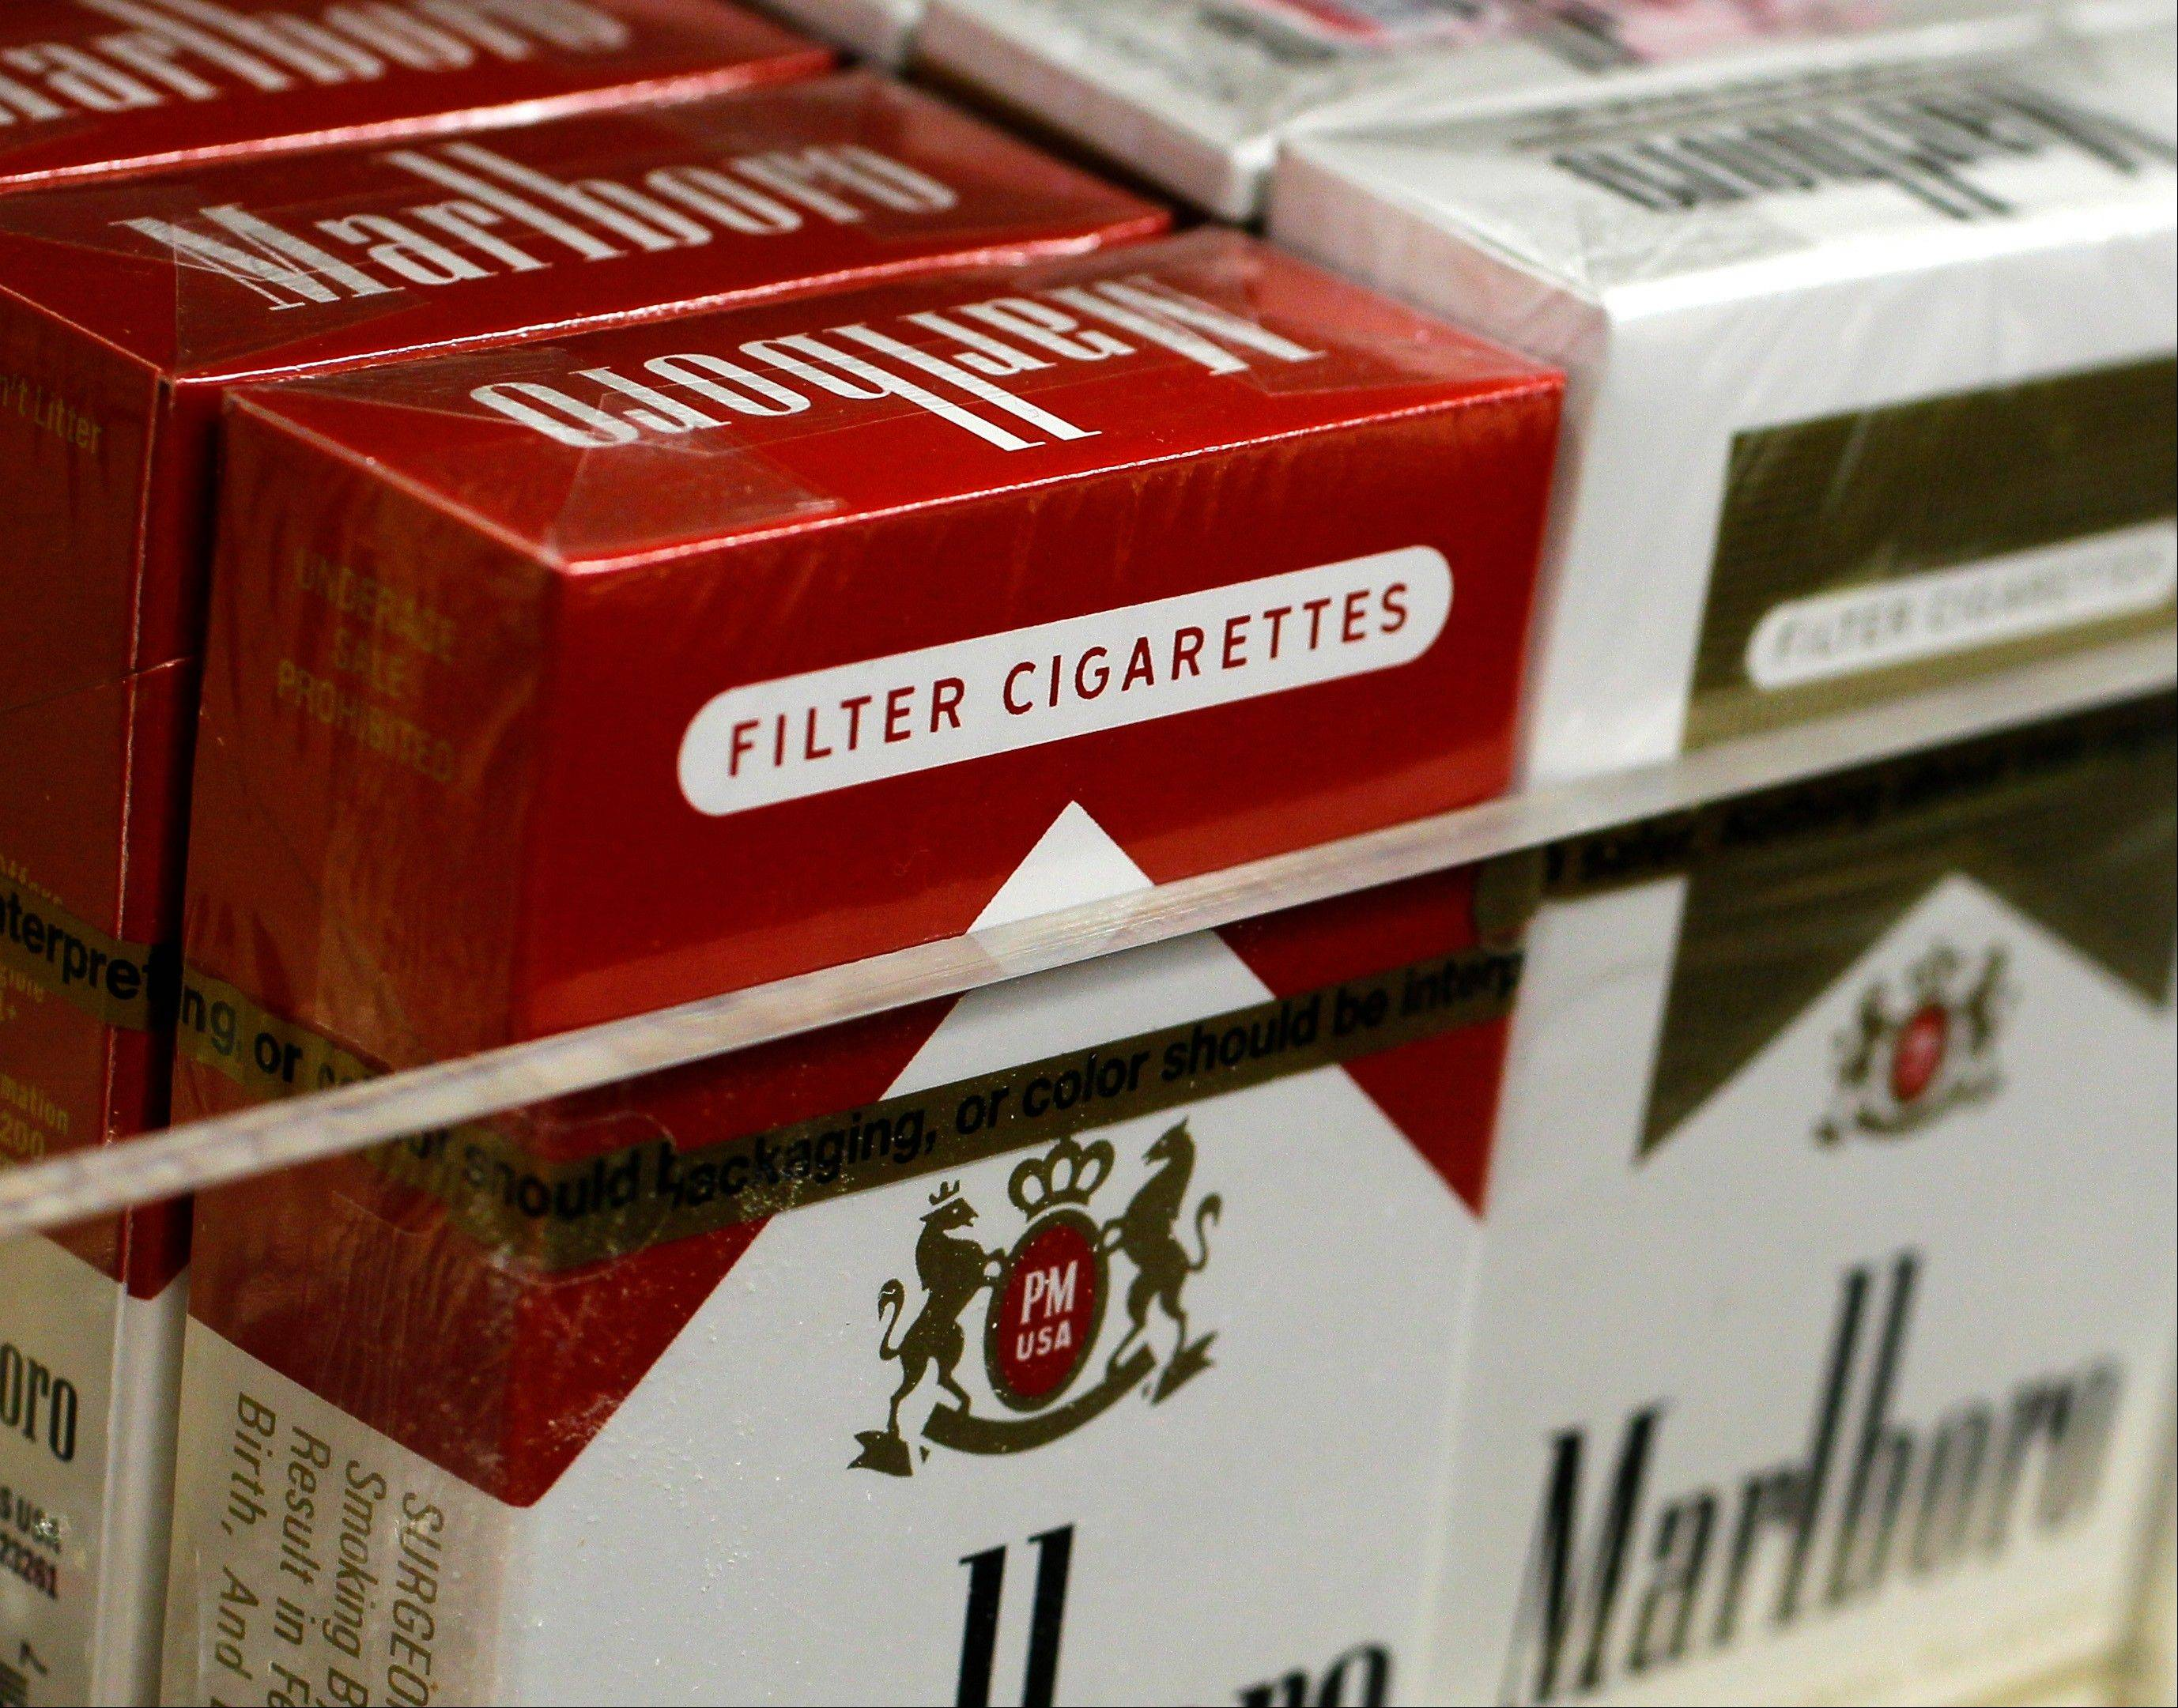 European Union regulators proposed stricter health warnings on cigarettes in the latest bid to curb smoking in Europe, where tobacco-related illnesses are estimated to kill one person every minute.